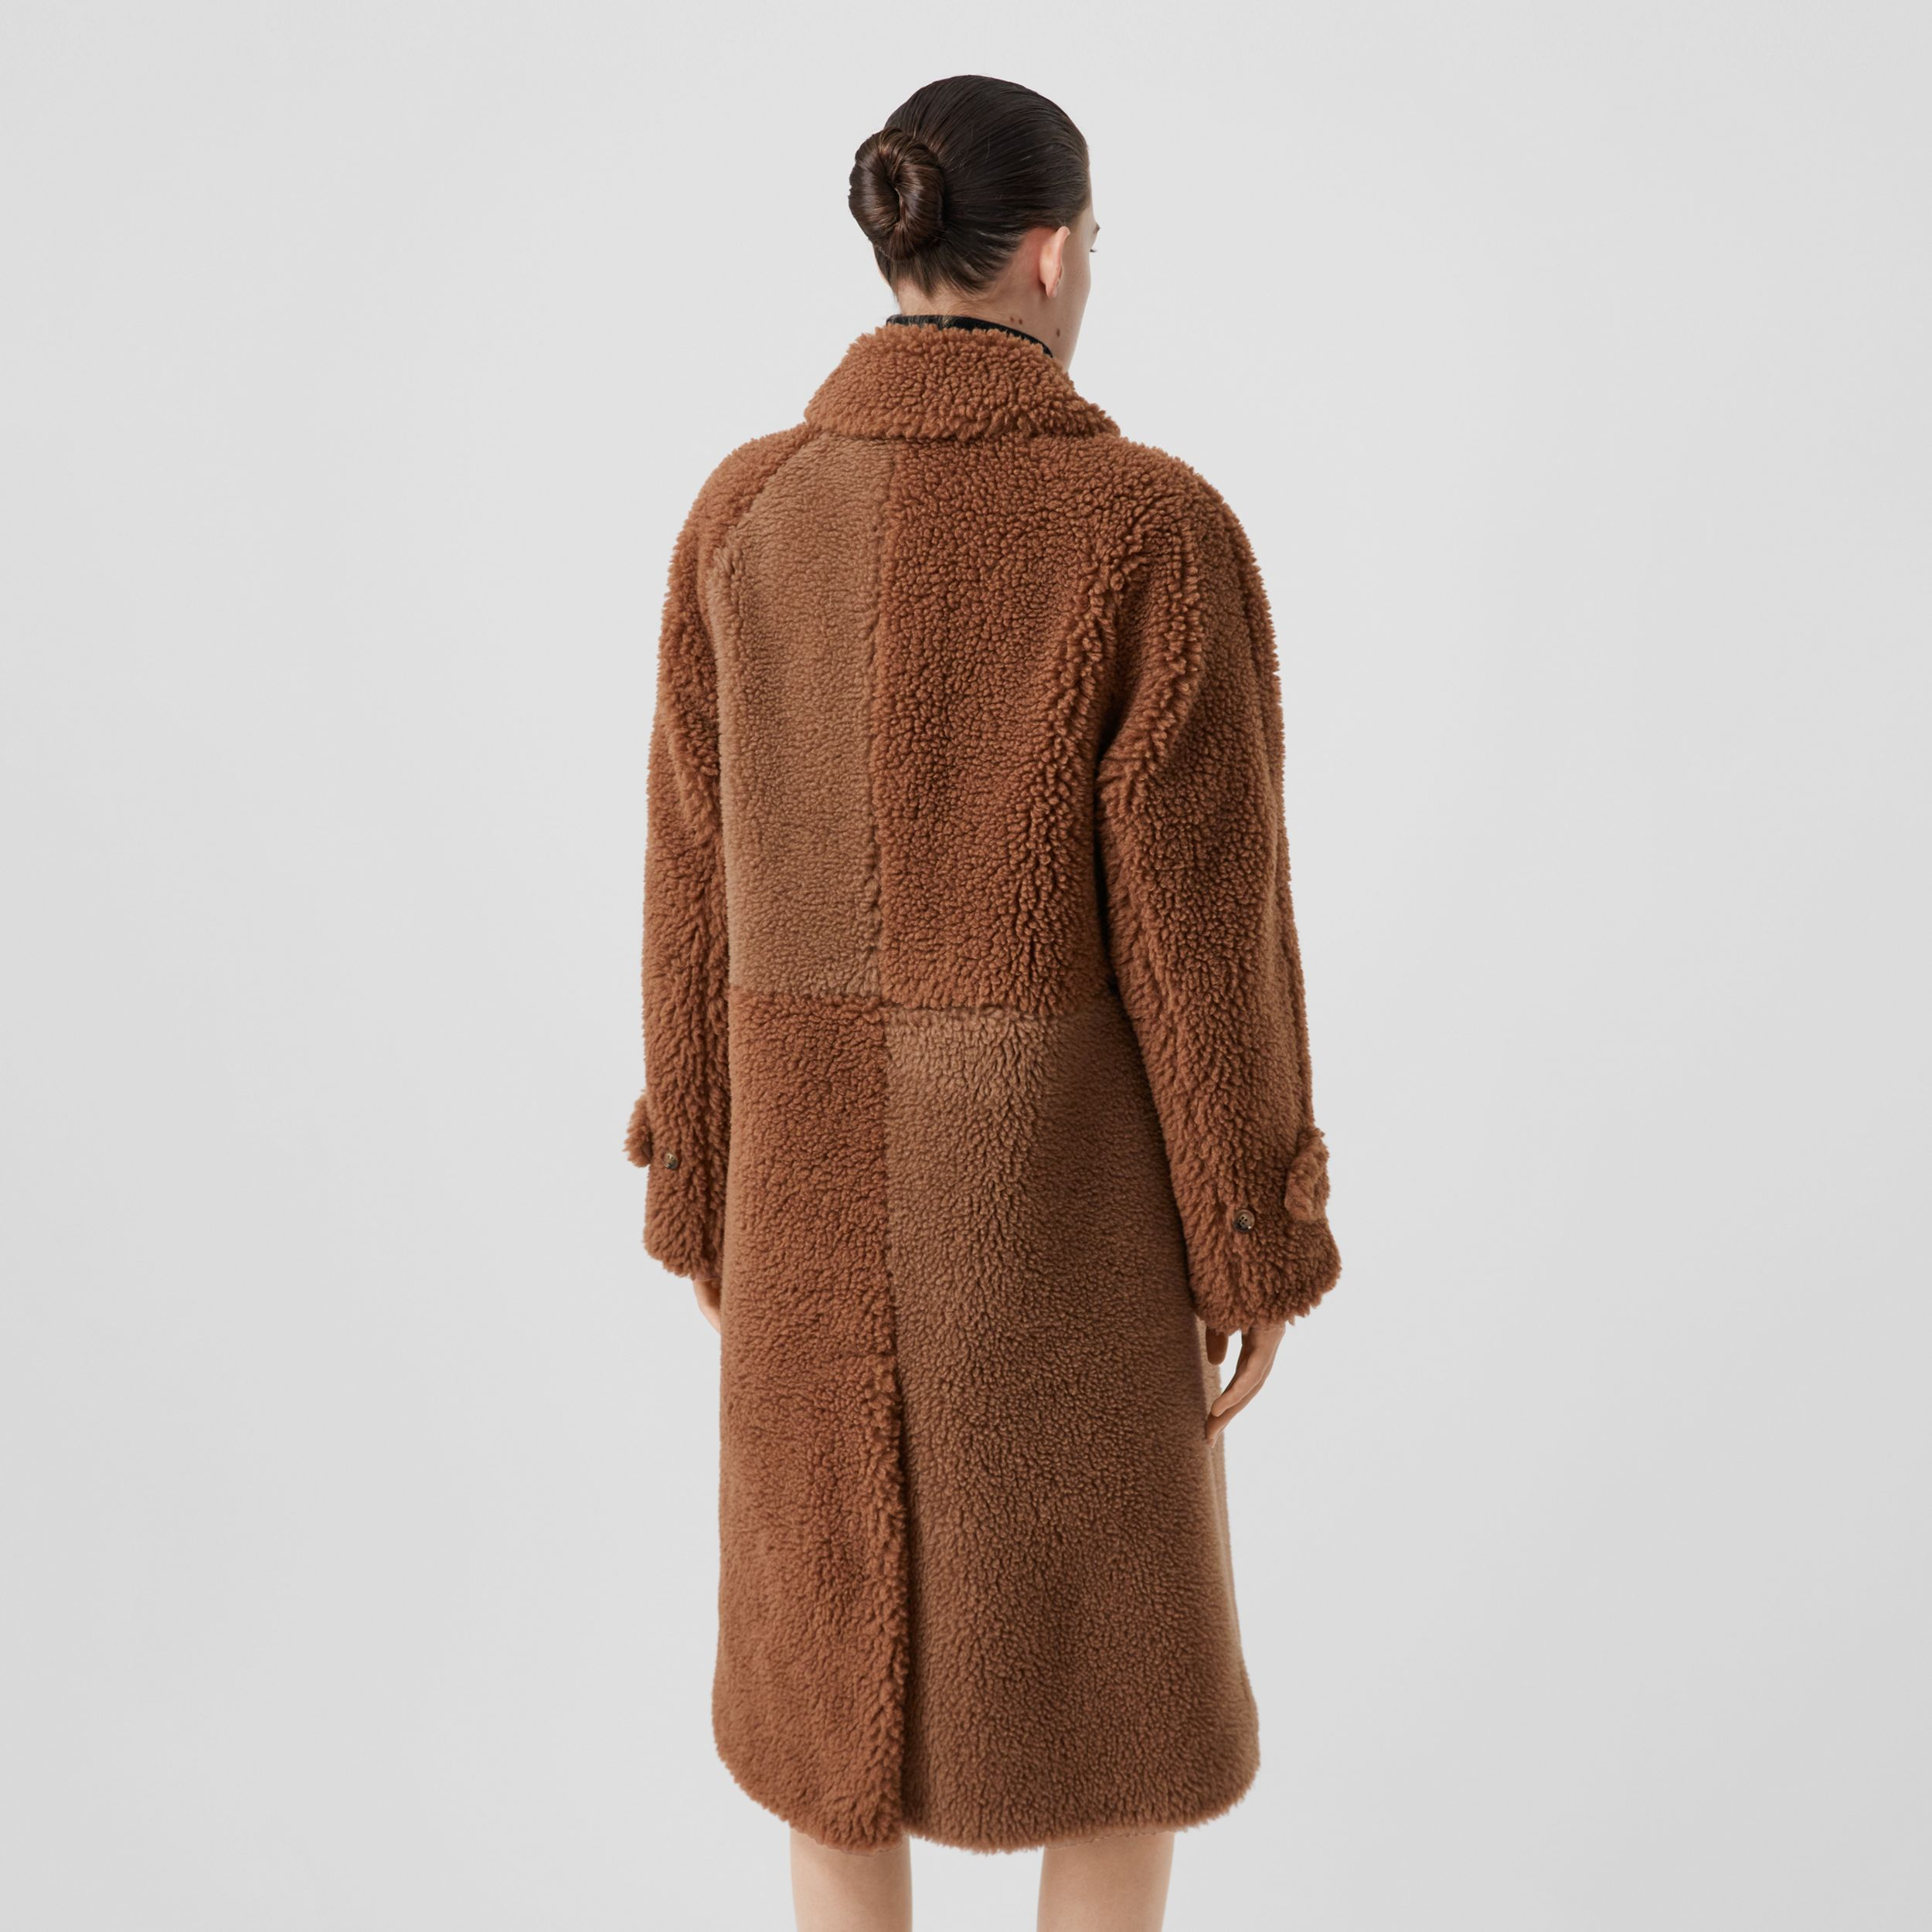 Faux Shearling and Camel Hair Blend Coat in Brown - Women | Burberry - 3